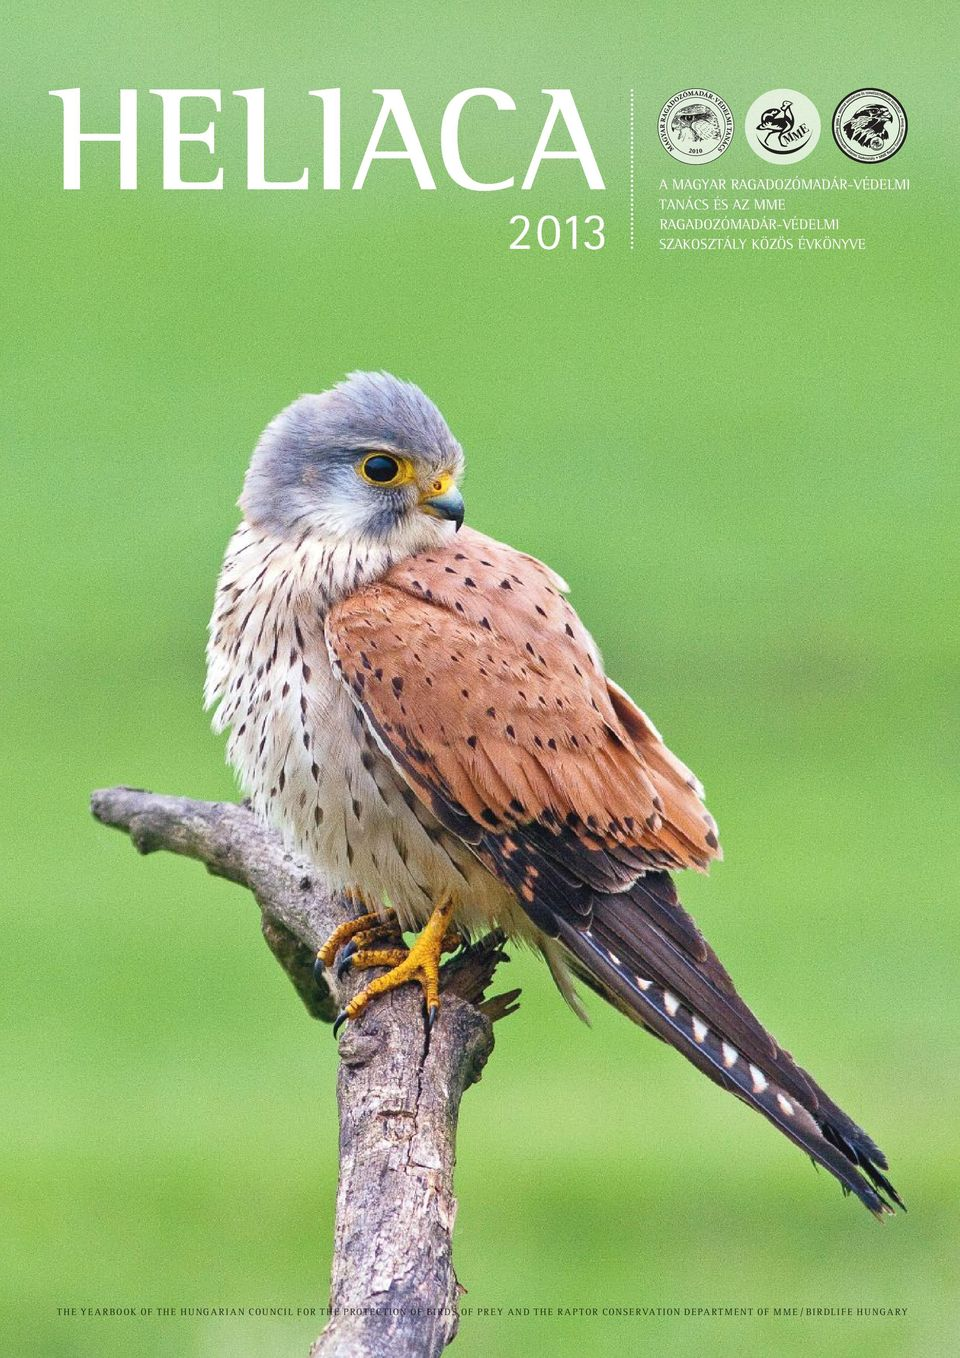 of the Hungarian Council for the Protection of Birds of Prey